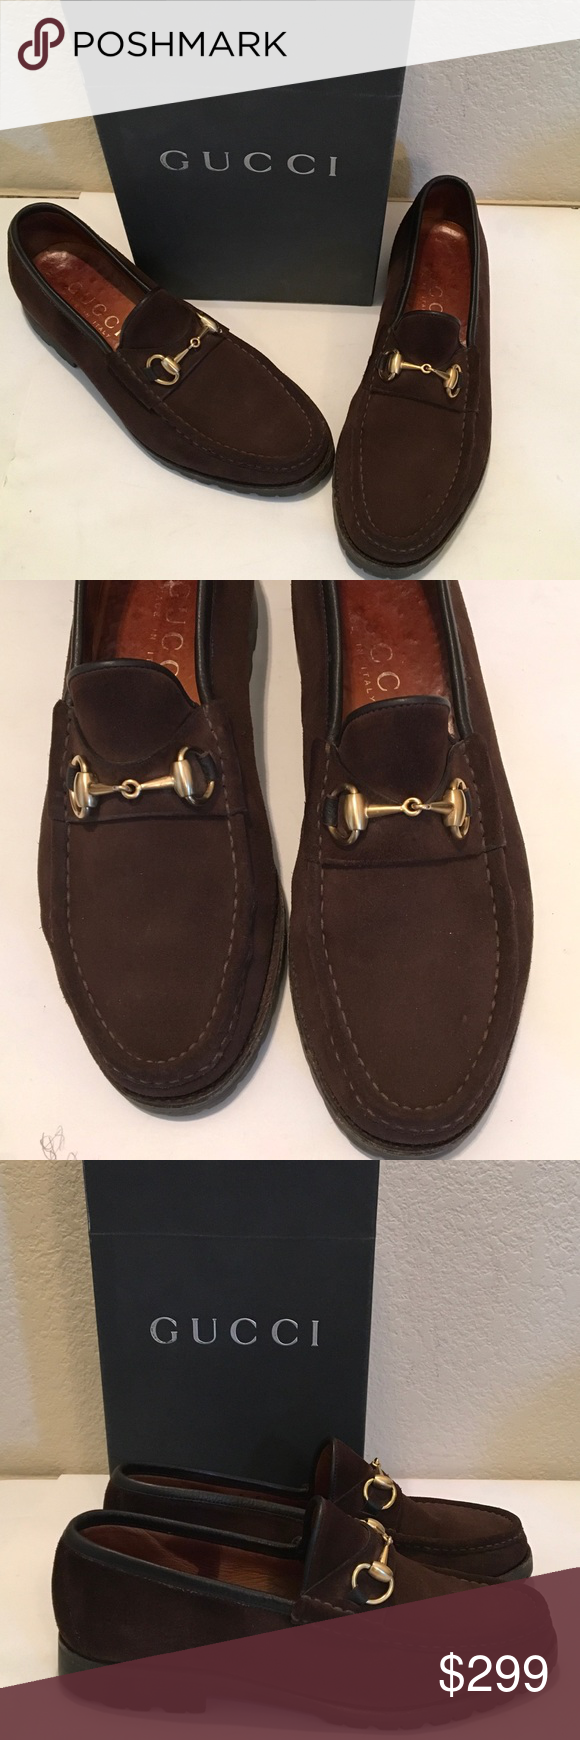 6206fbe740a75 GUCCI MENS Brown SUEDE Horsebit LOAFER RUBBER SOLE Excellent condition Men's  Chocolate Suede sport slip on